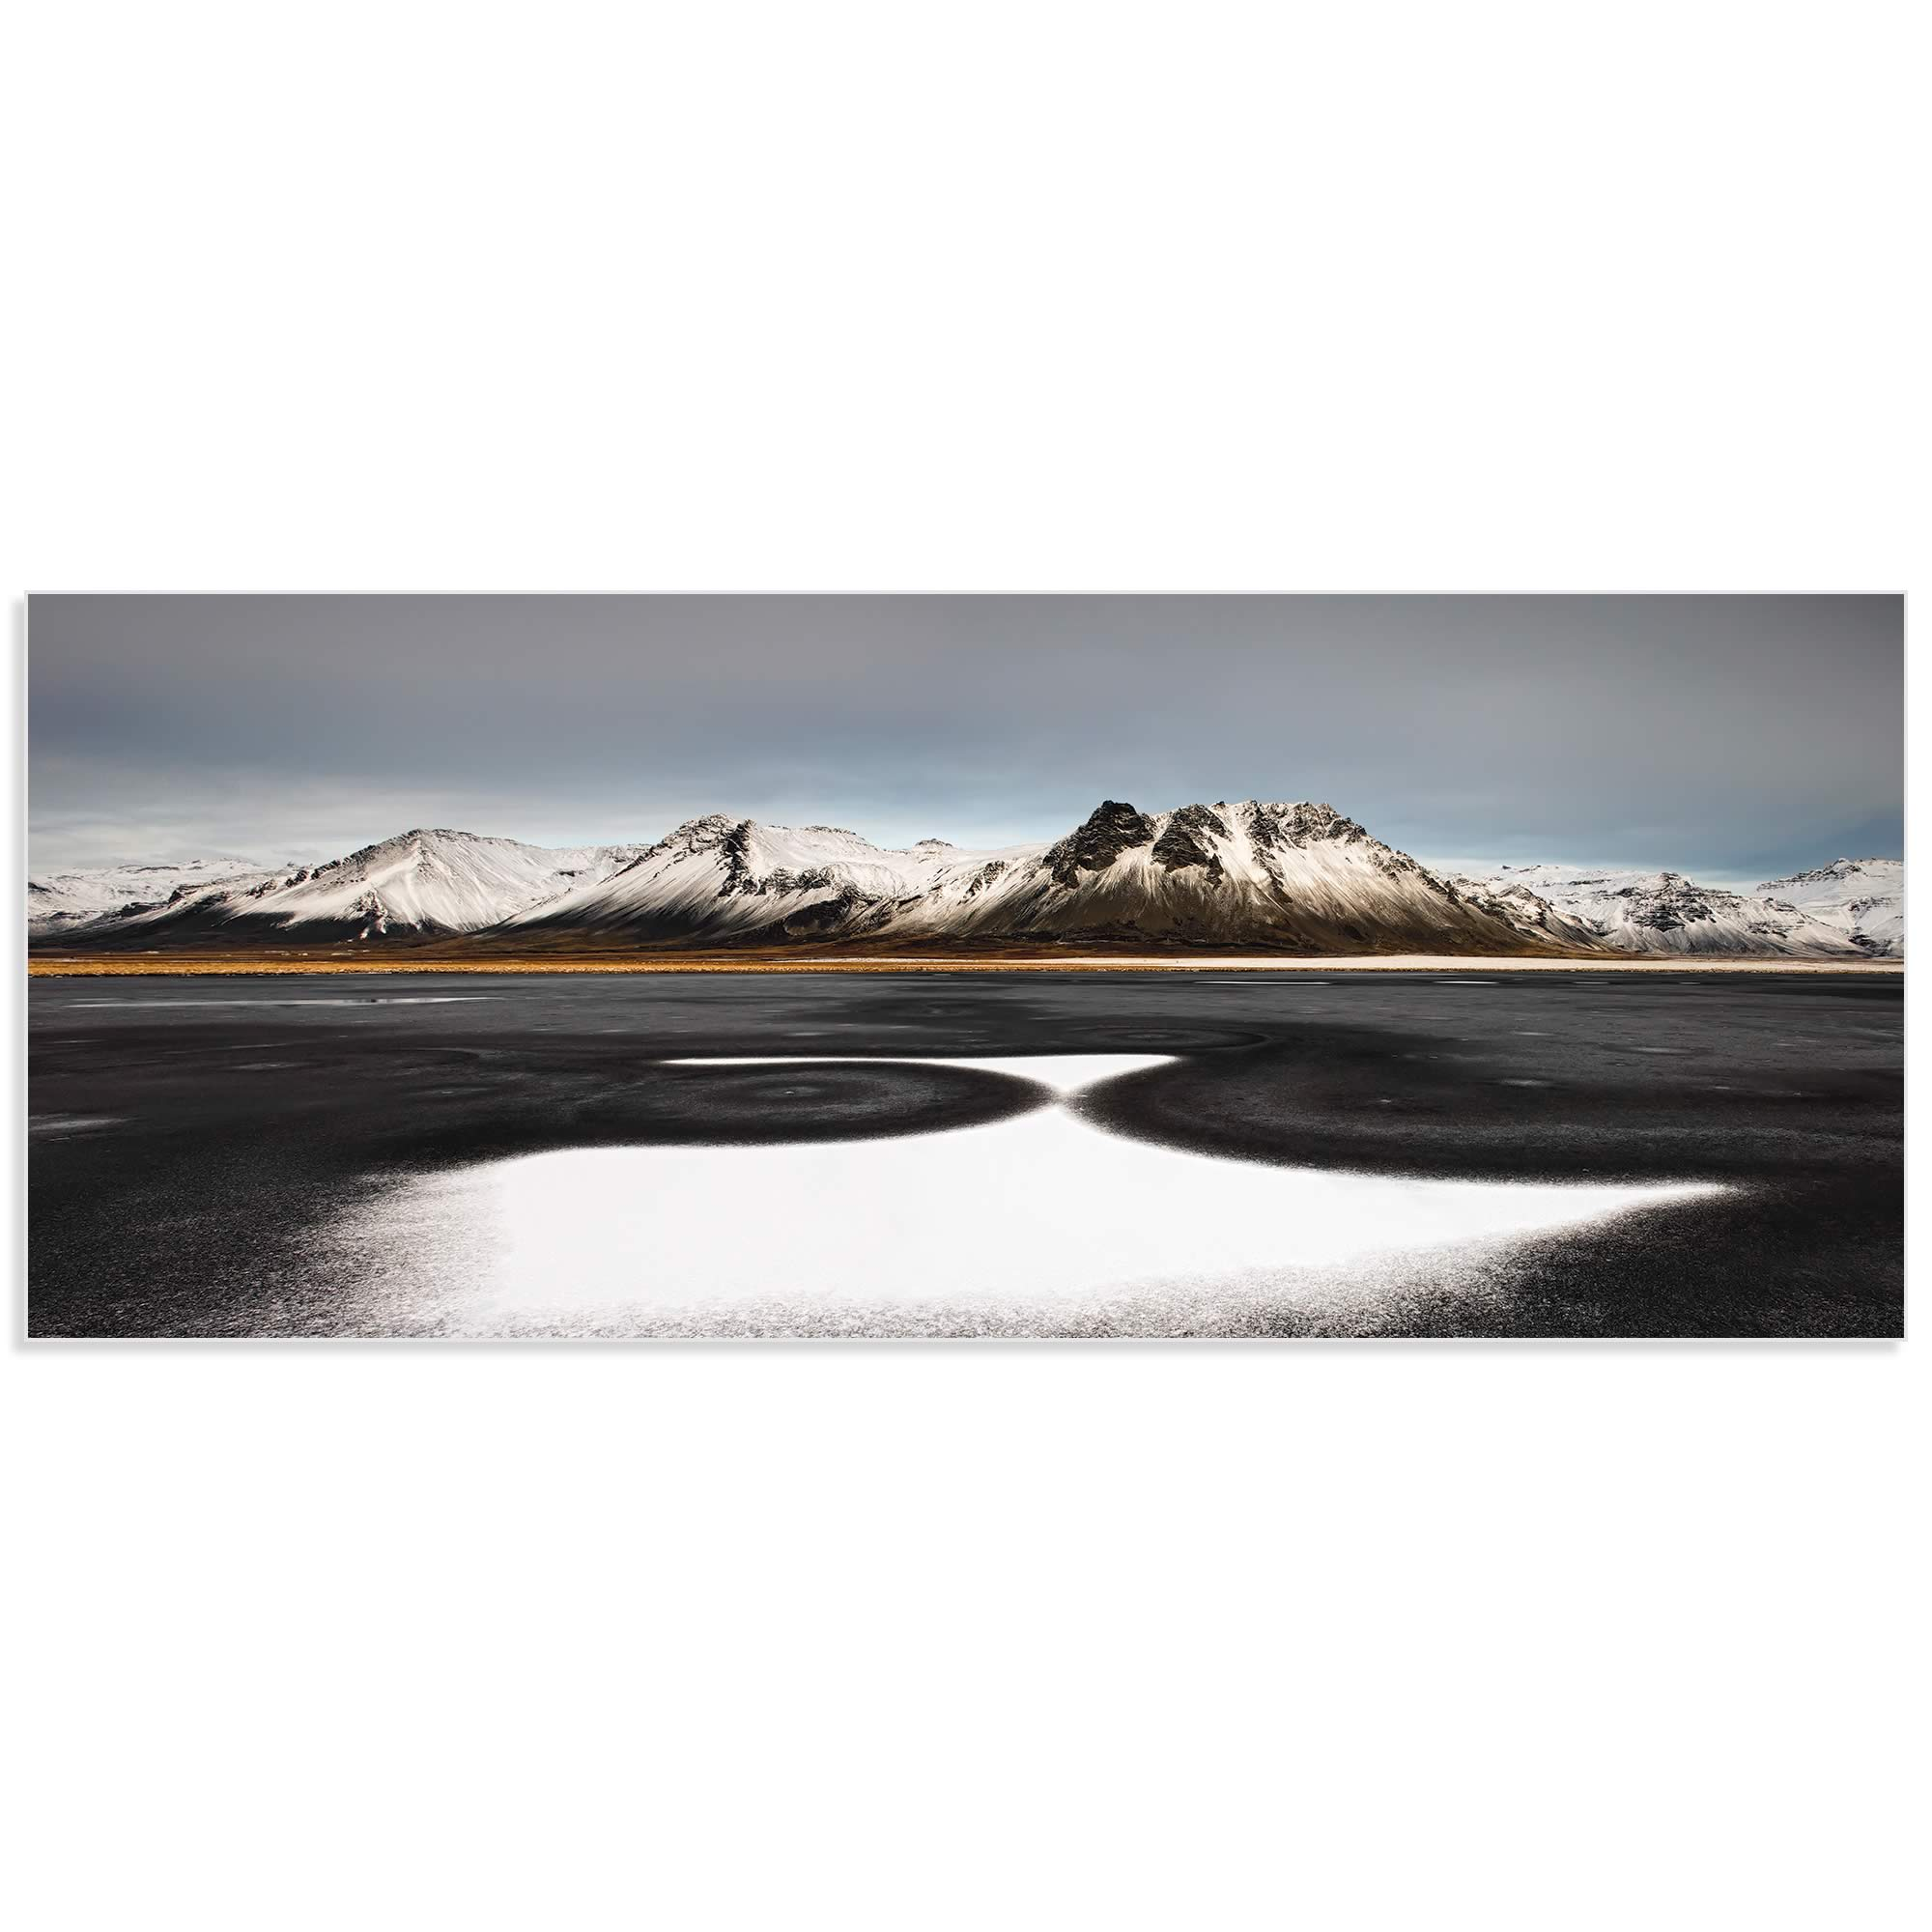 Iceland First Snow by Liloni Luca - Snowy Landscape Art on Metal or Acrylic - Alternate View 2